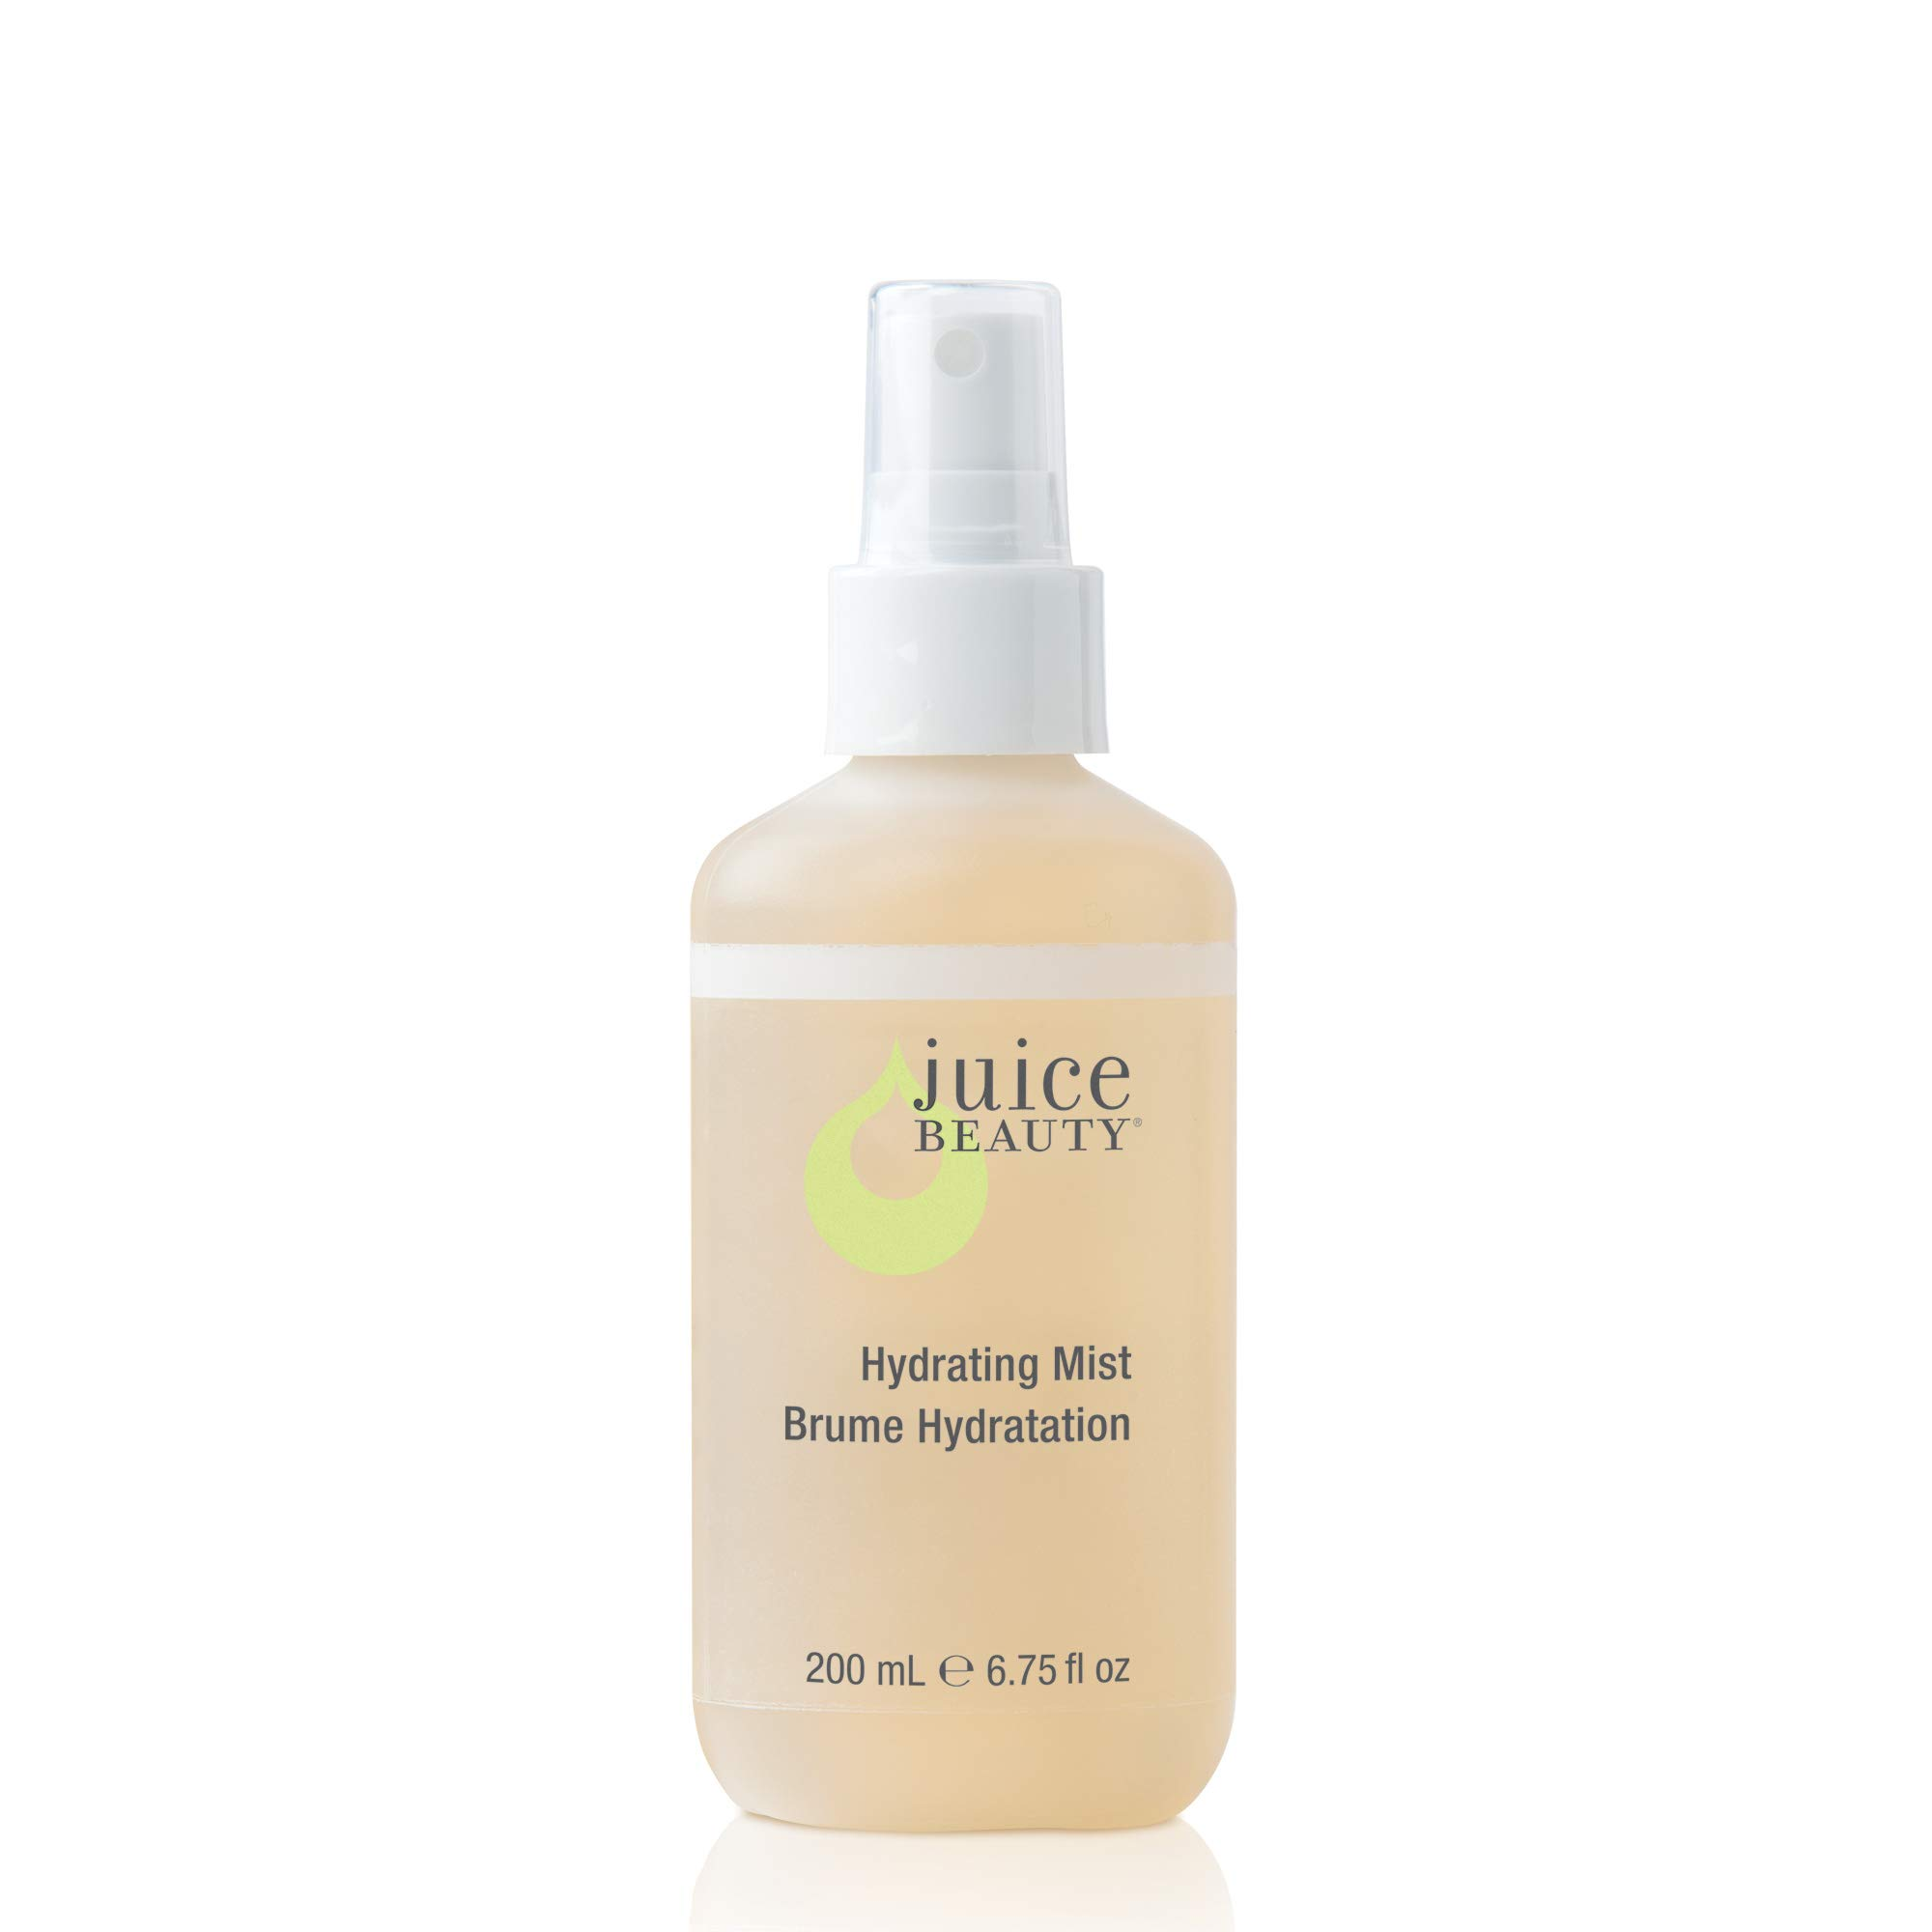 Juice Beauty Hydrating Mist, 6.75 fl. oz. by Juice Beauty